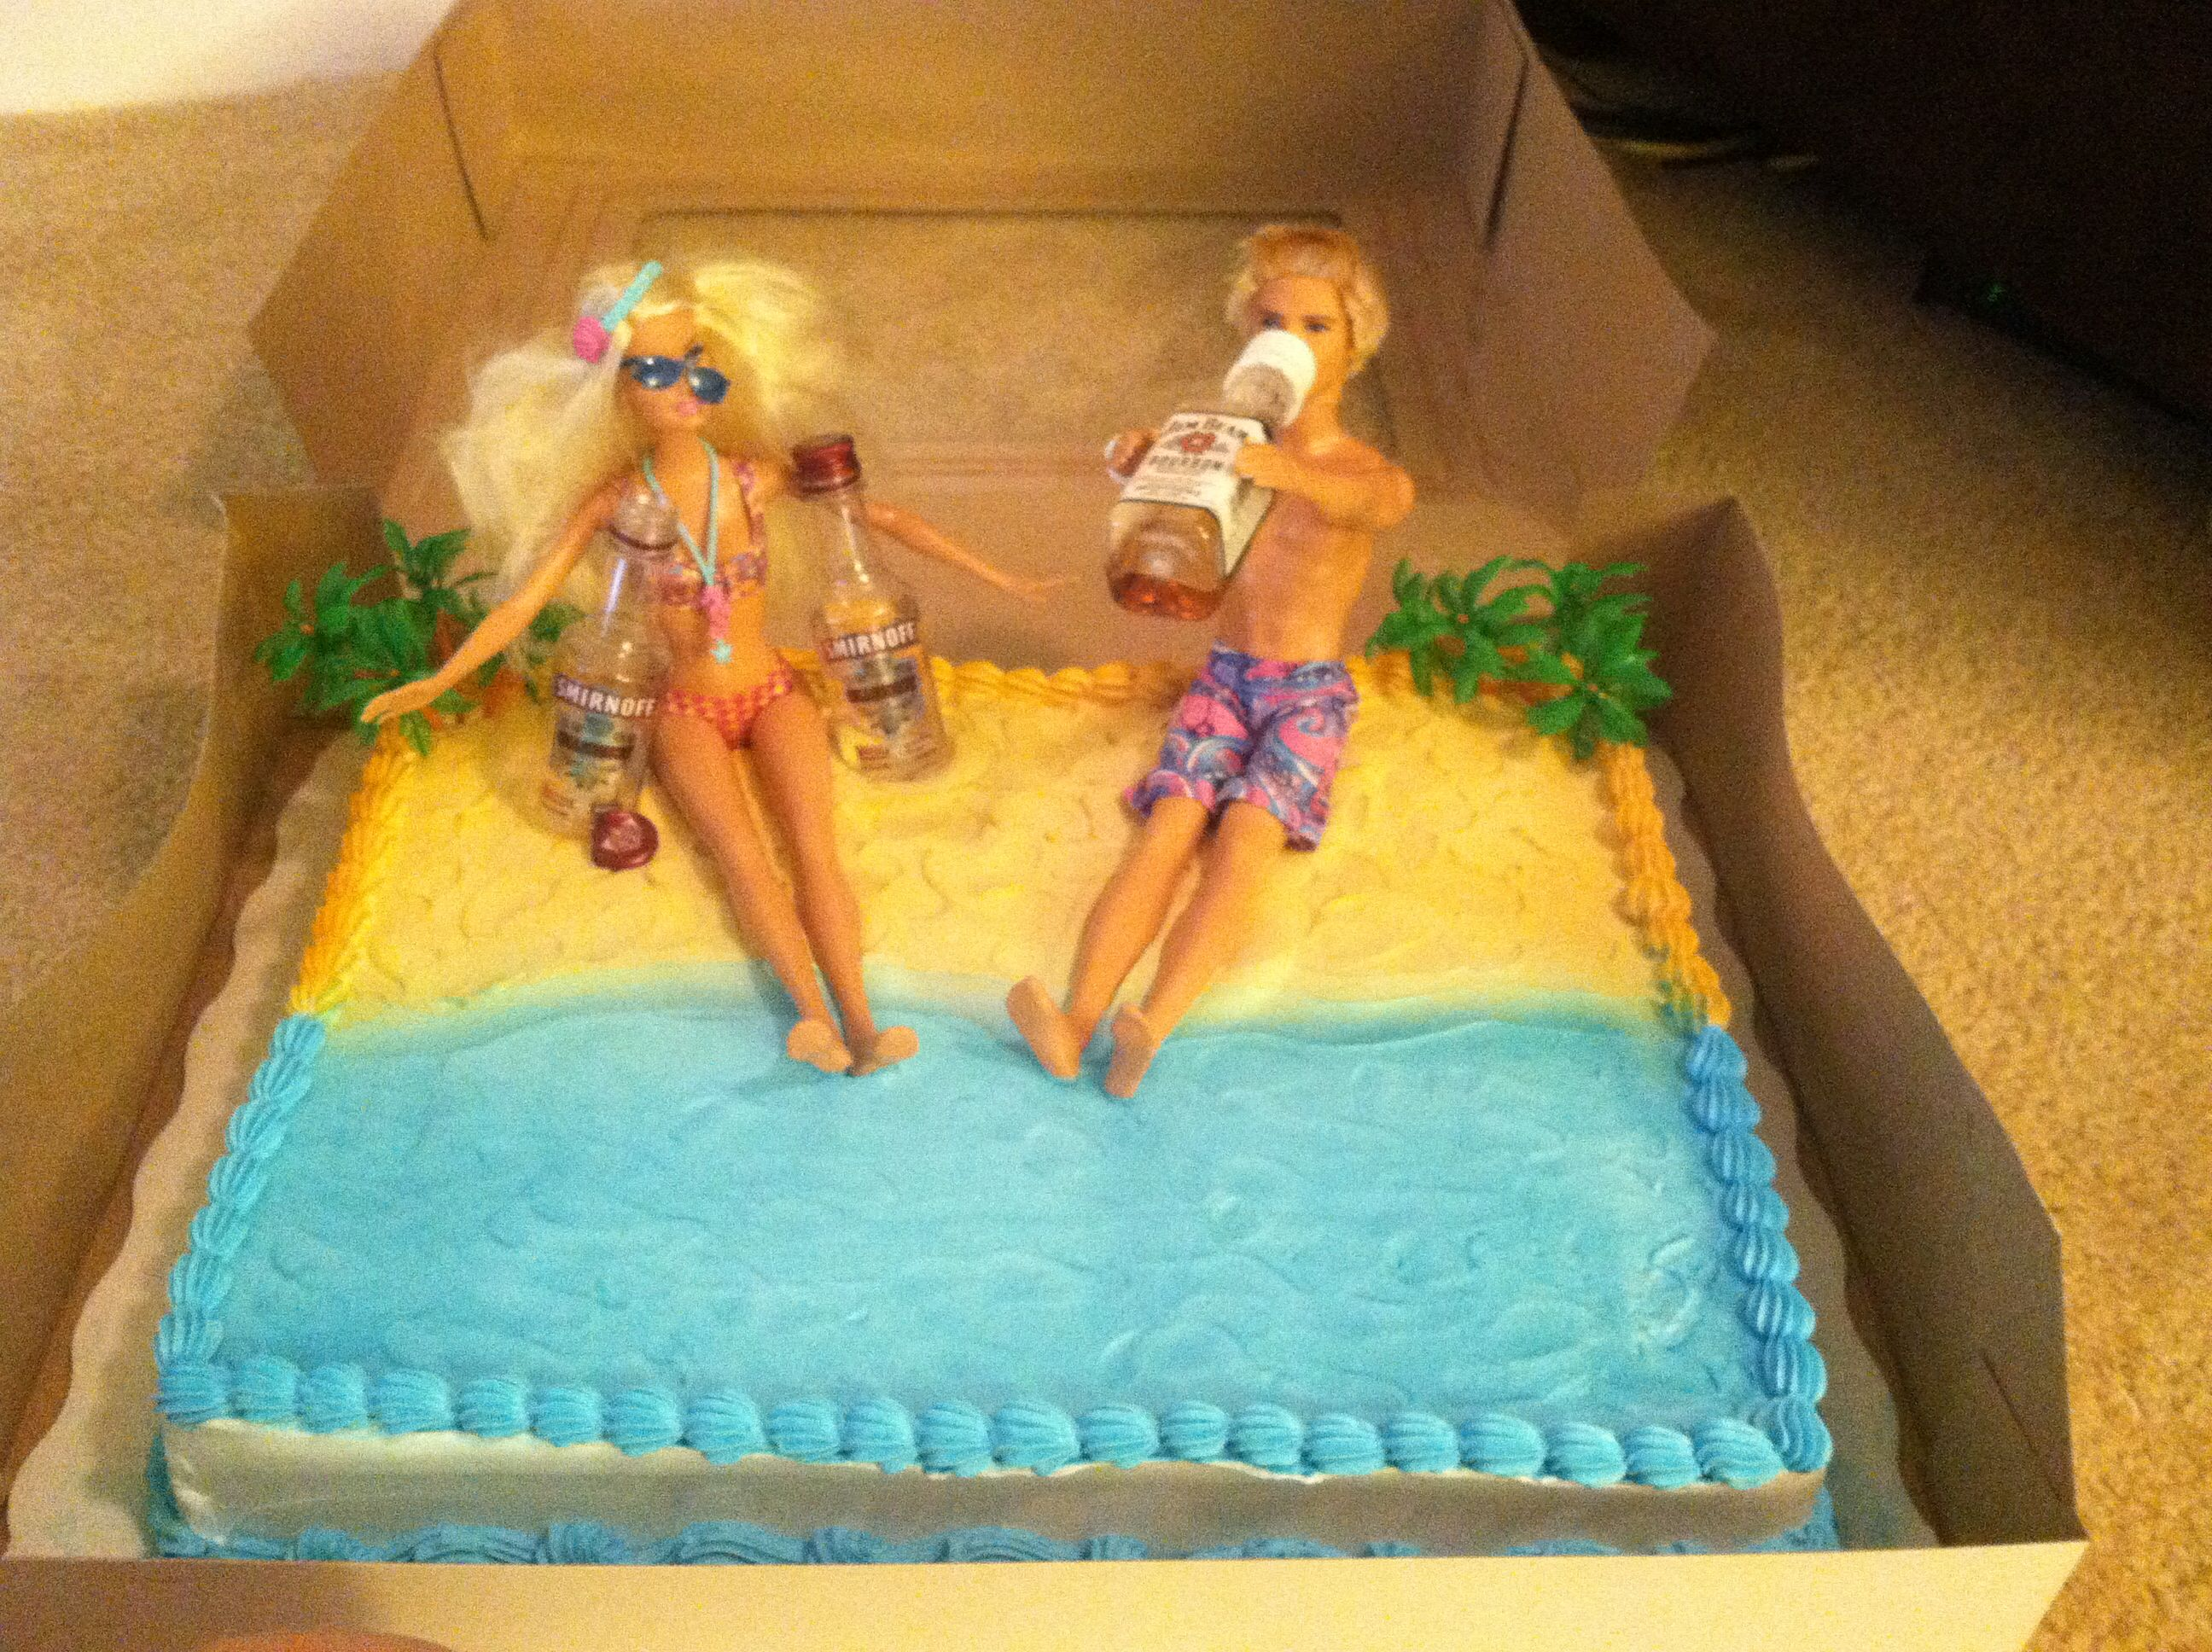 Drunk Barbie beach cake 21 and Hot Buy Me a Shot Pinterest